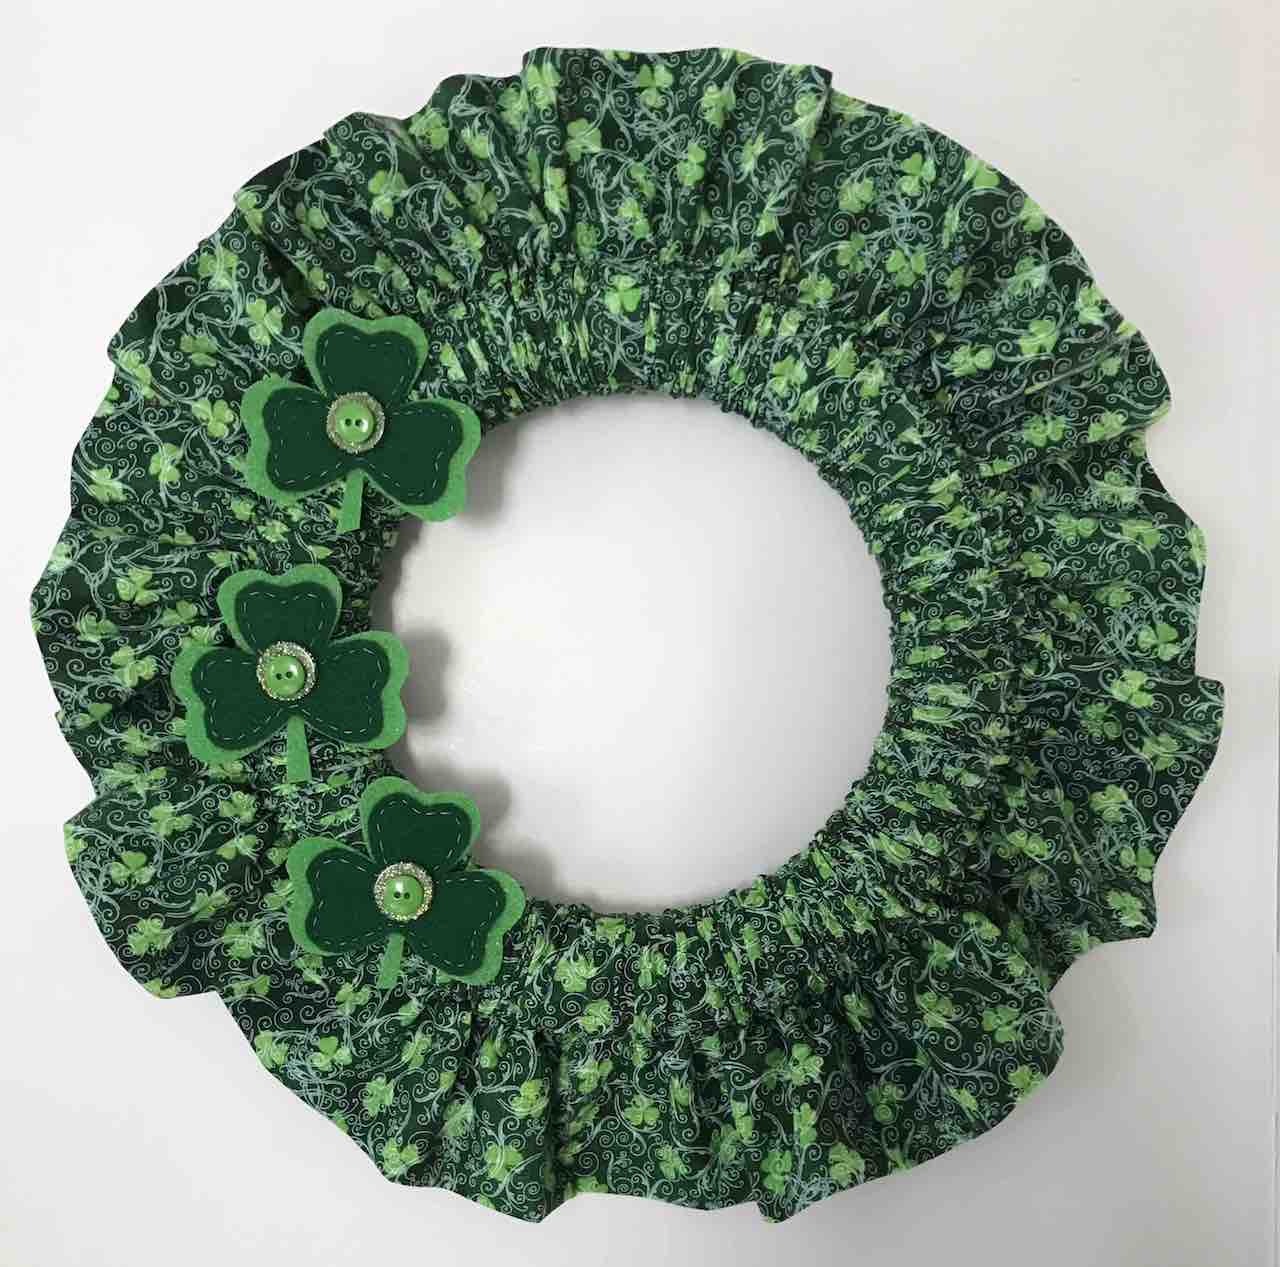 St-Patricks-Day-Holiday-Fabric-Wreath by Clever Little Mouse